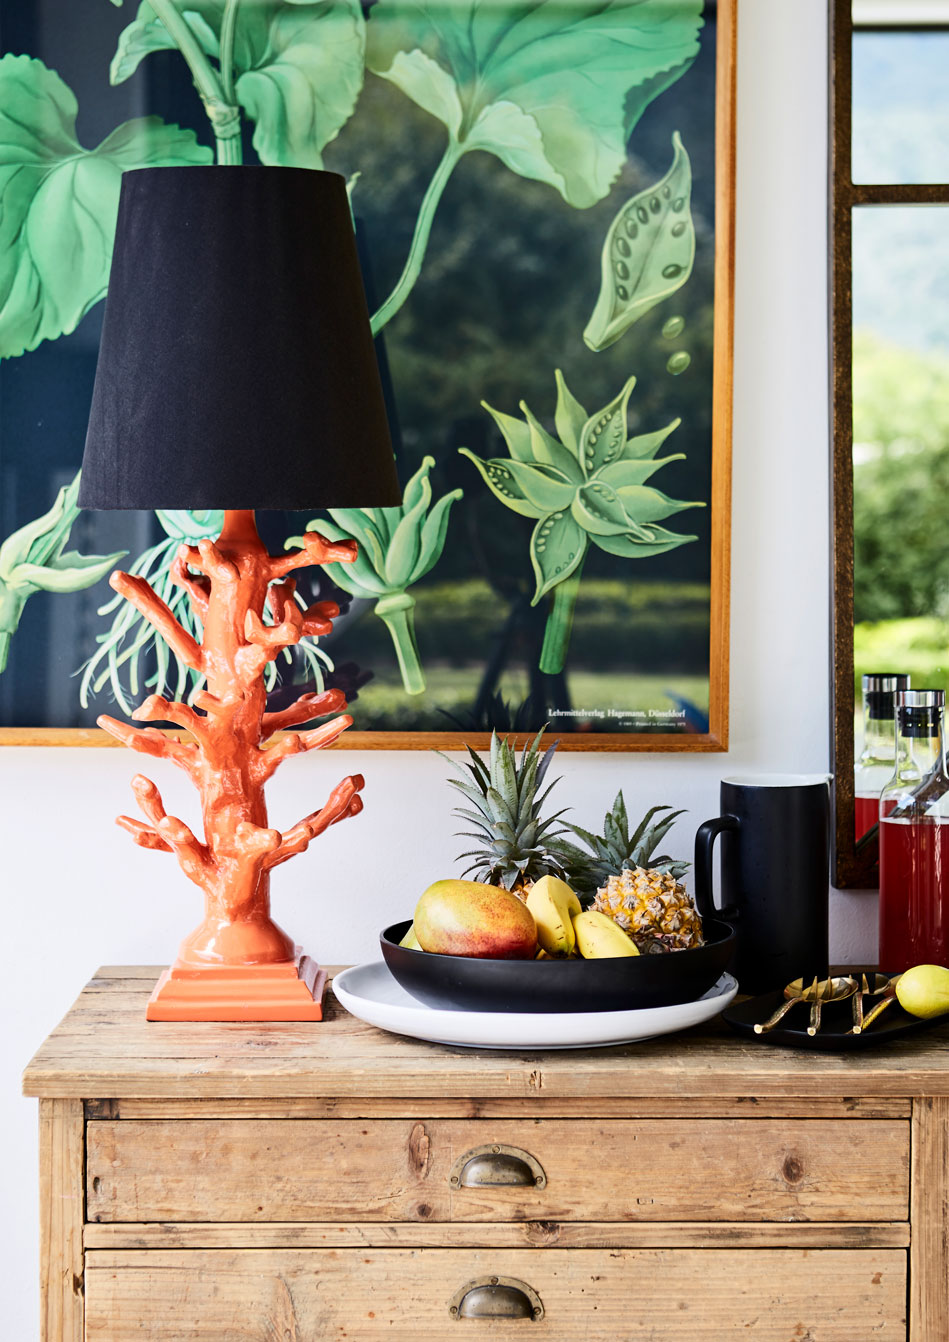 In the dining space of the 'outdoor room' or patio area, the multi-drawer wooden sideboard and the bright orange, coral-inspired lamp are both from Block & Chisel (blockandchisel.co.za). The botanical artwork is a Jung-Koch-Quentell teaching panel, available through Hagemann.